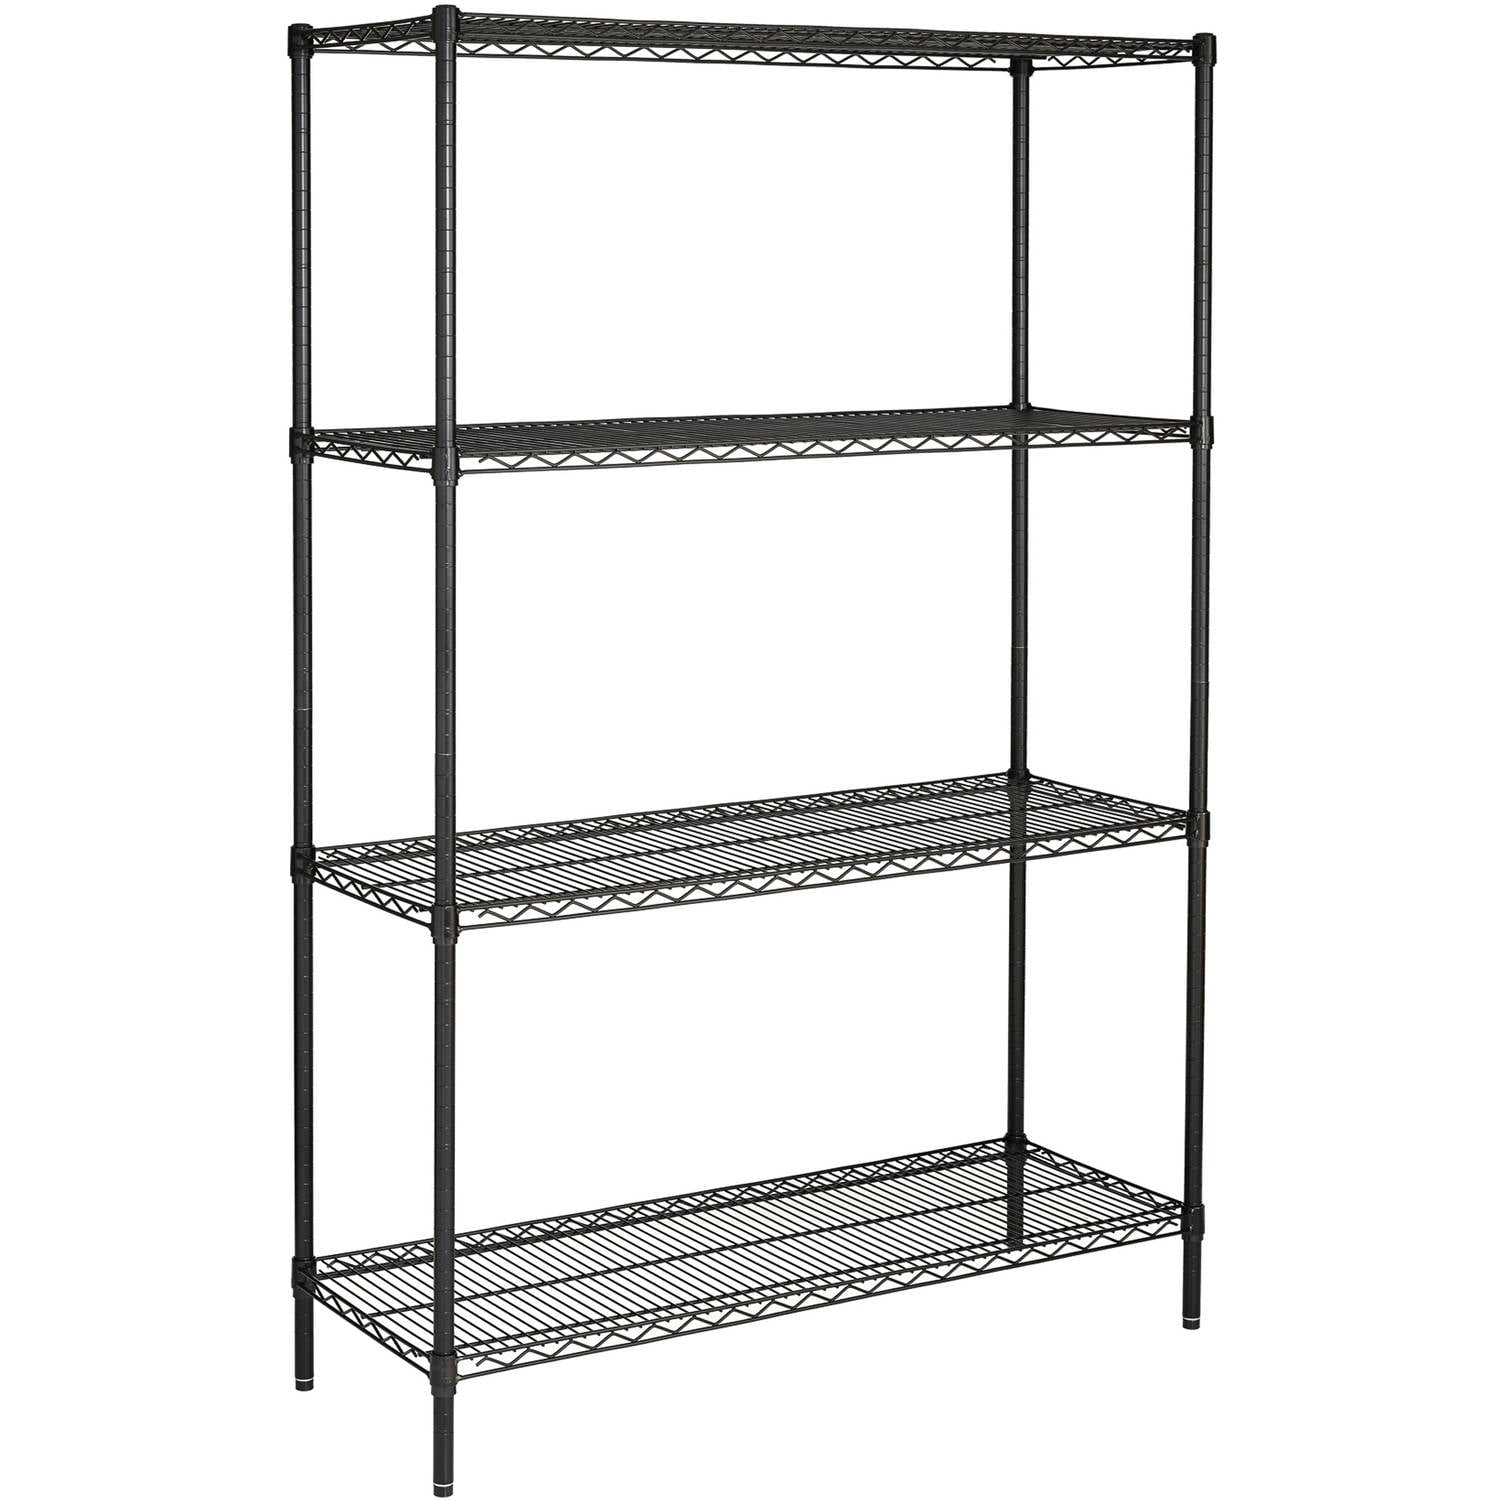 Wire Shelving Baskets | Hyper Tough 18 Dx48 Wx75 H With Casters 4 Shelf Commercial Grade